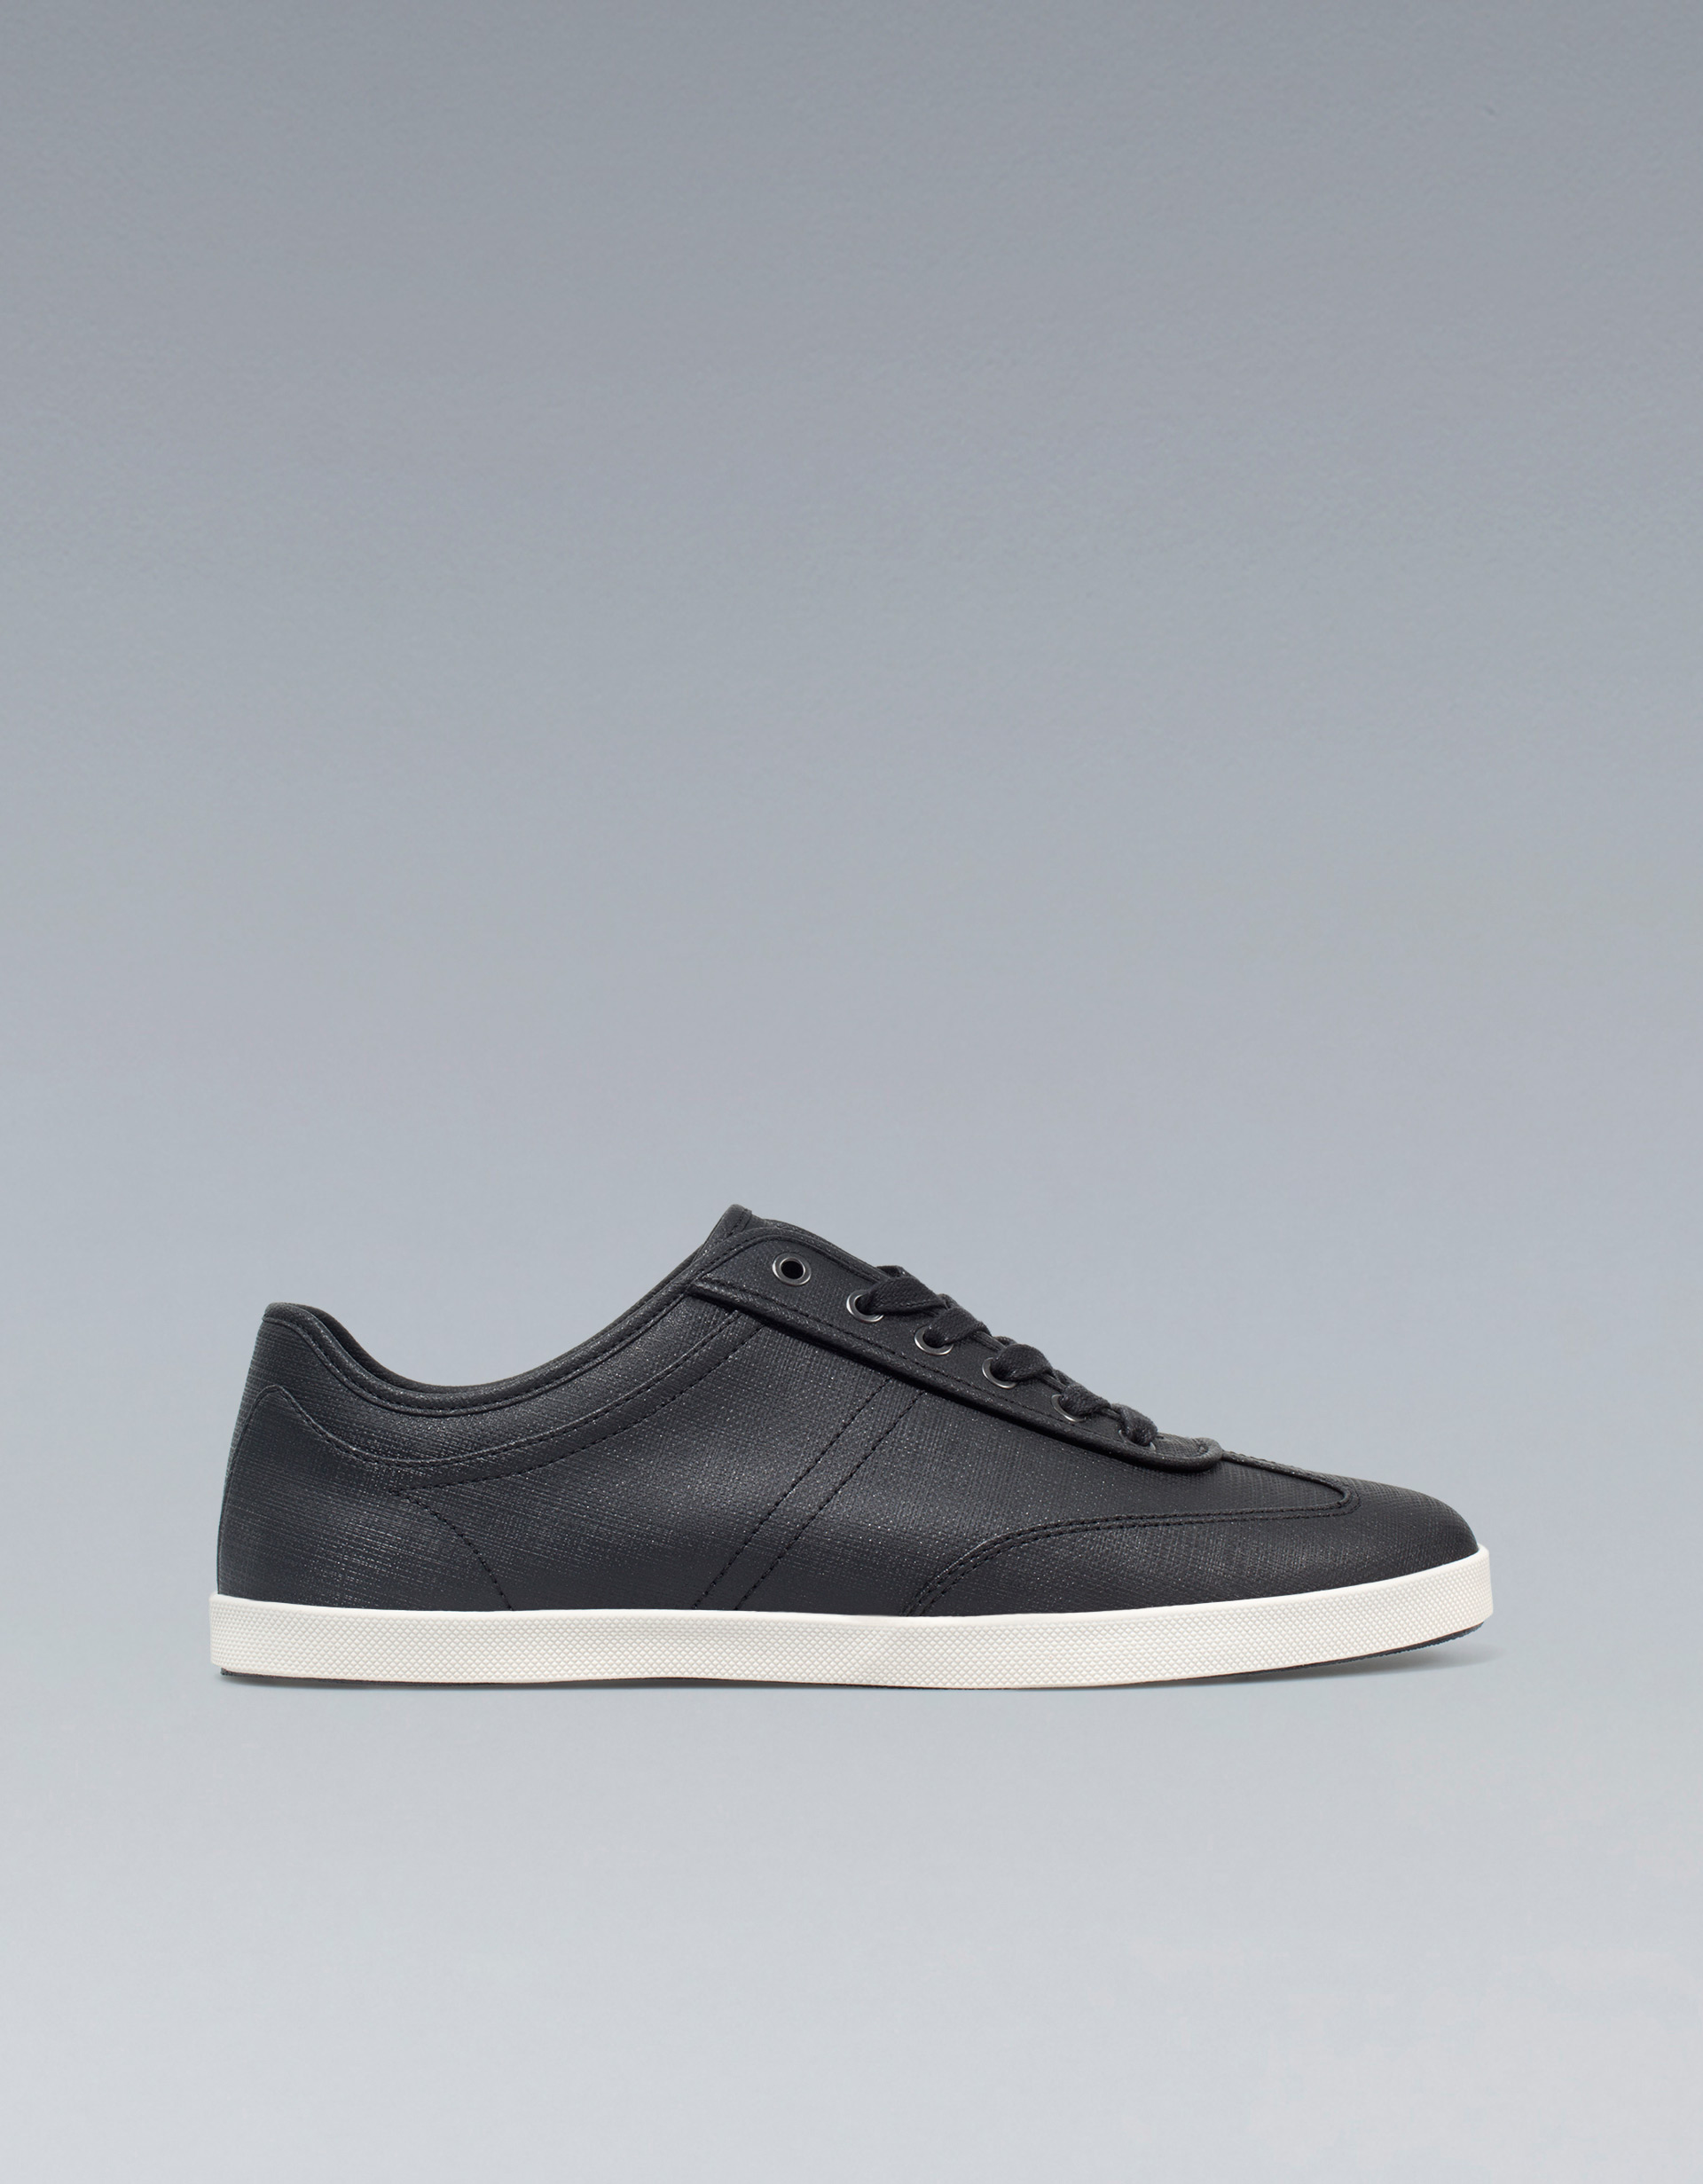 Zara Rubber Sneakers In Black For Men Lyst